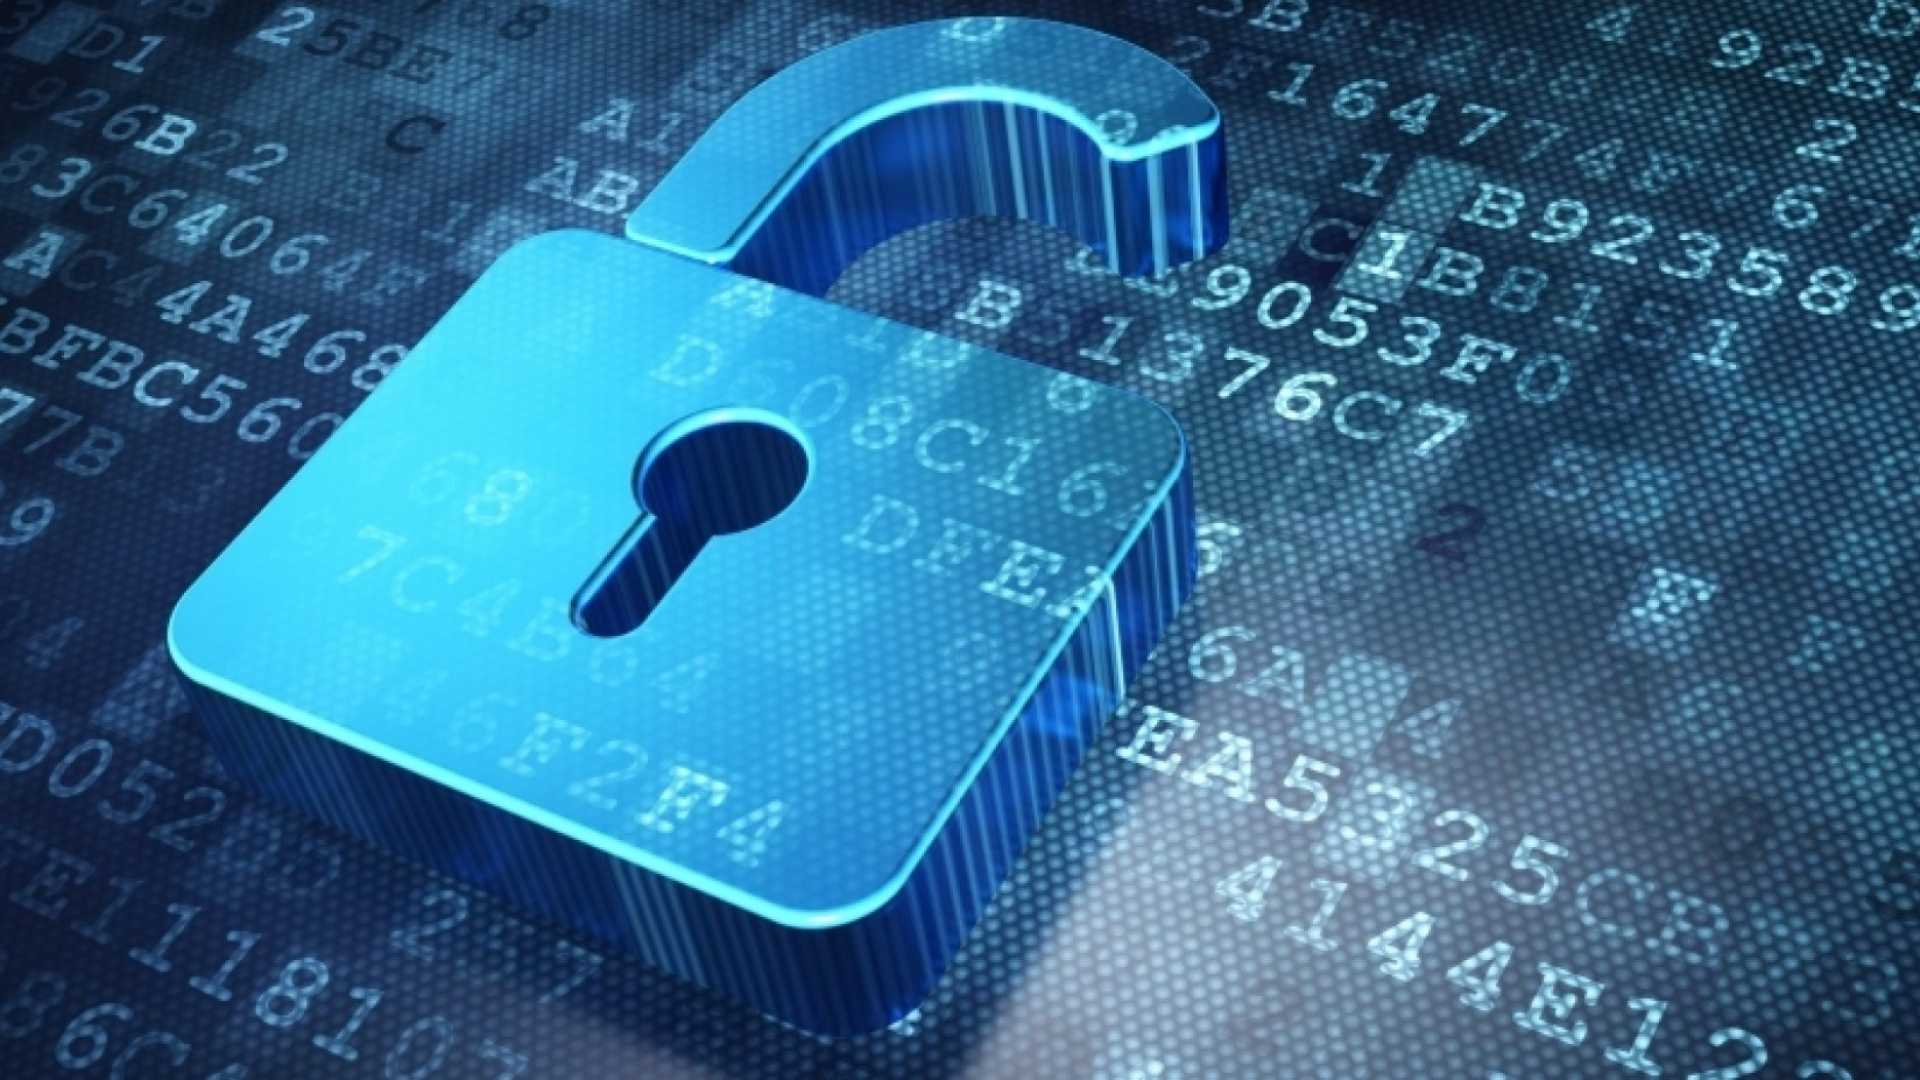 13 Tips to Achieve Great Cybersecurity Without Spending a Fortune